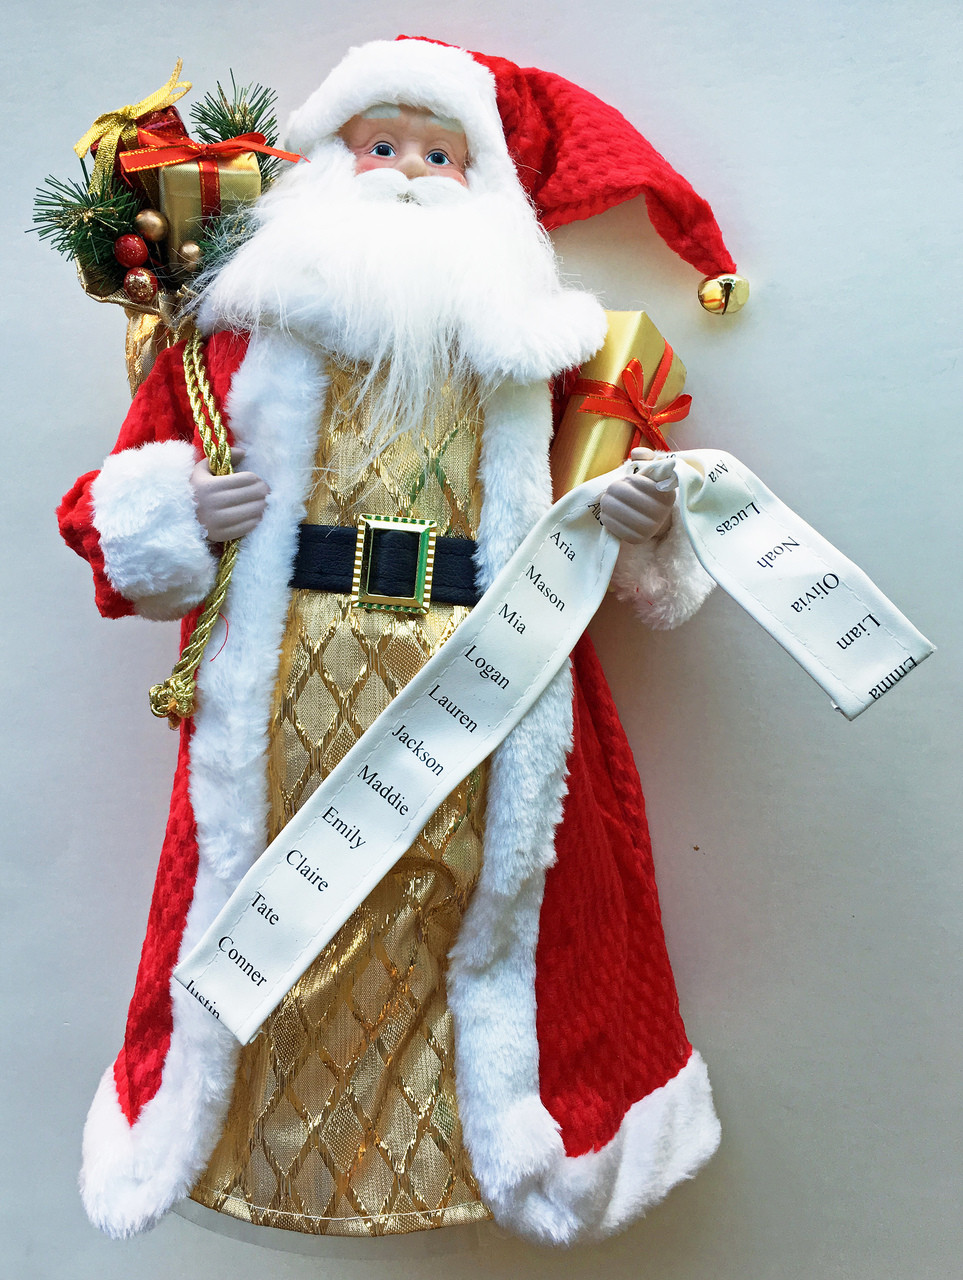 Christmas Tree Toppers.Here Comes Santa Claus Christmas Tree Topper 18 H